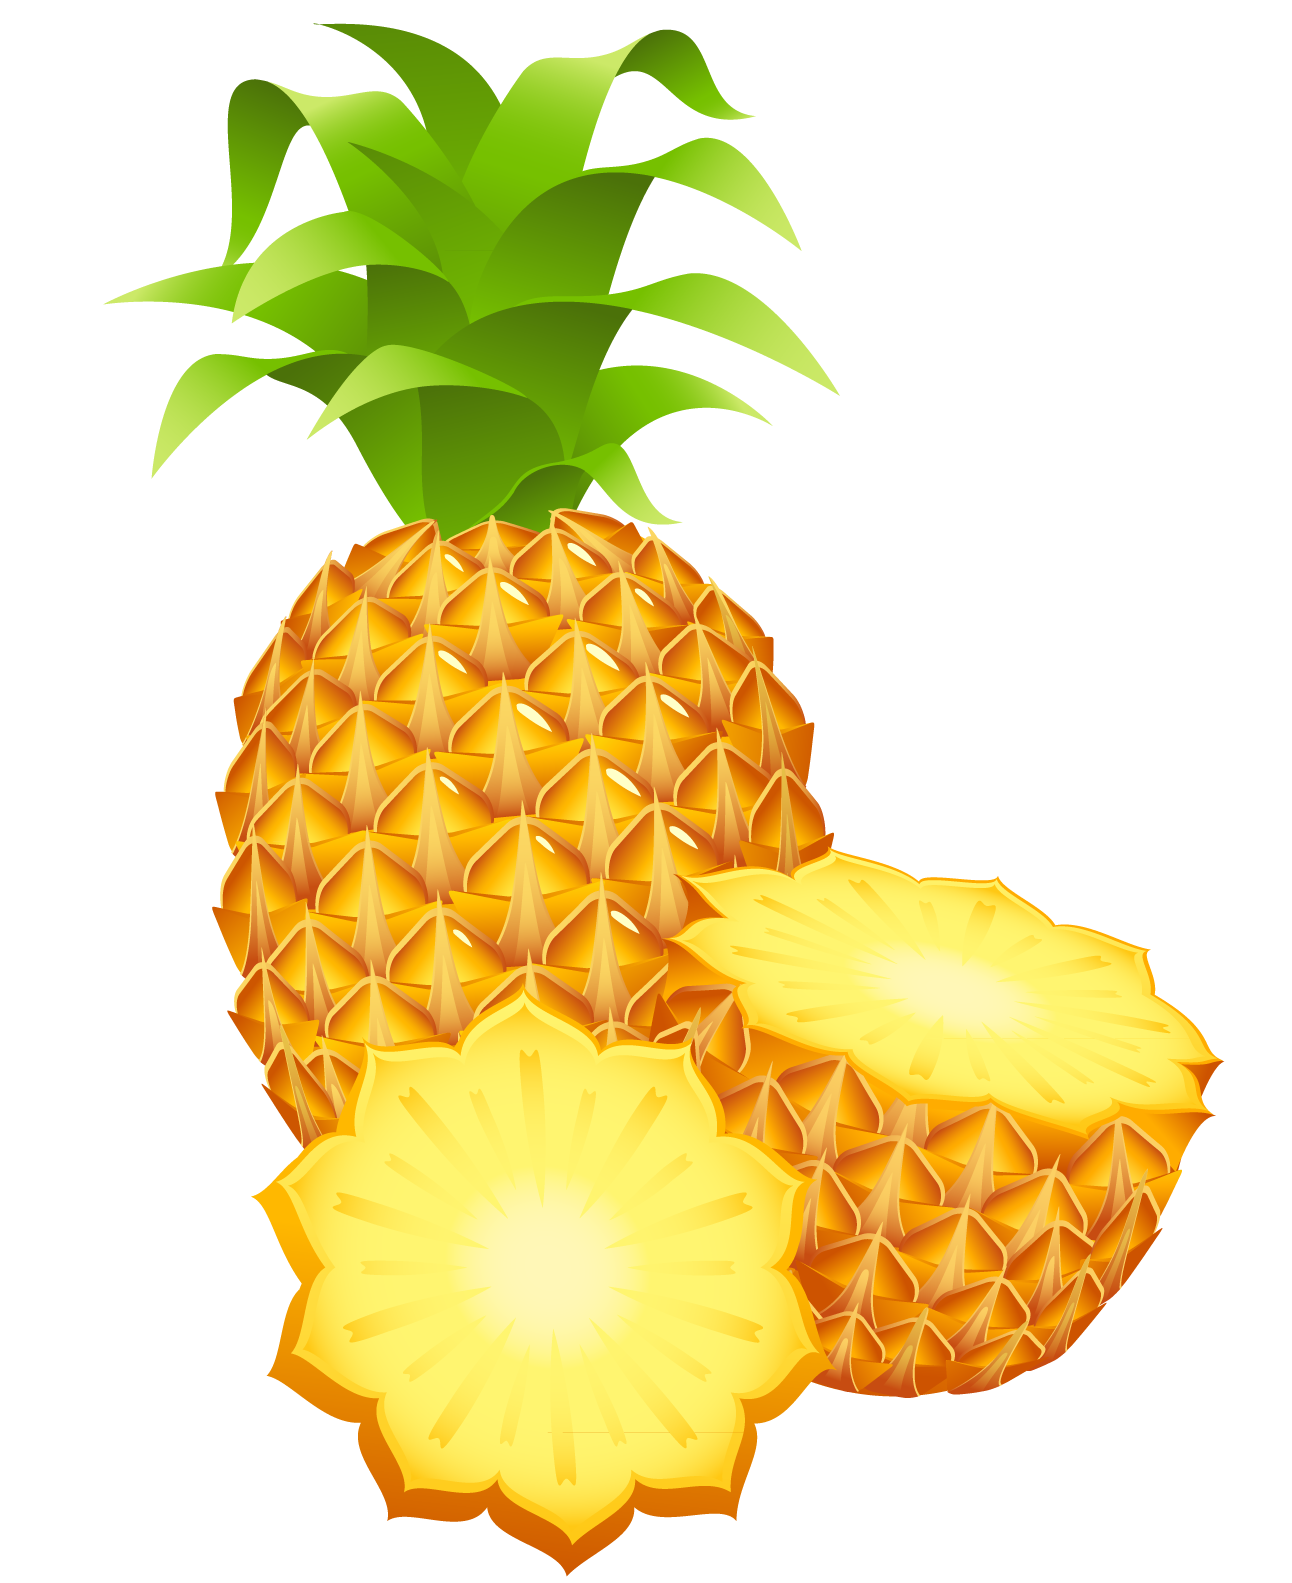 Pineapple images free pictures download clip art 2